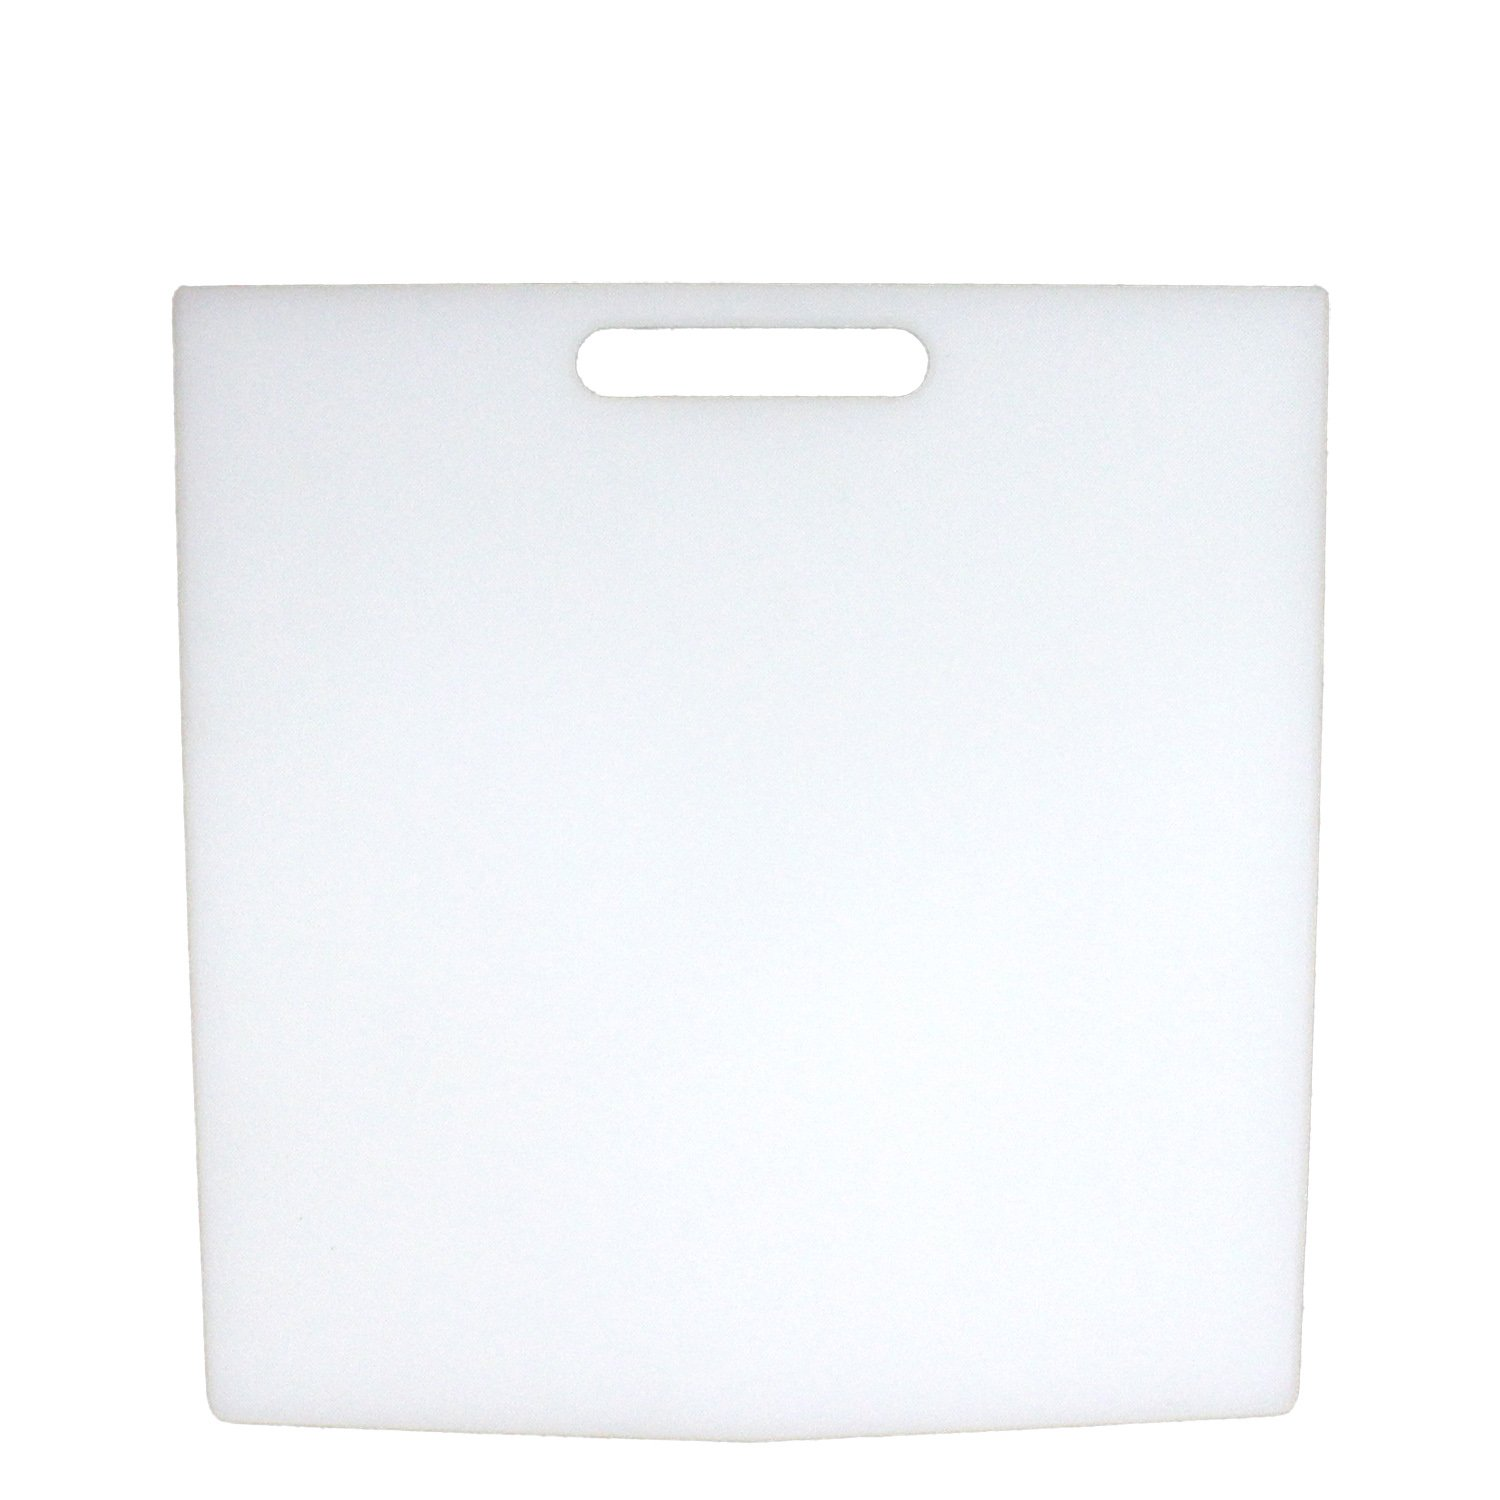 nICE White Divider, 75Qt by nICE (Image #1)